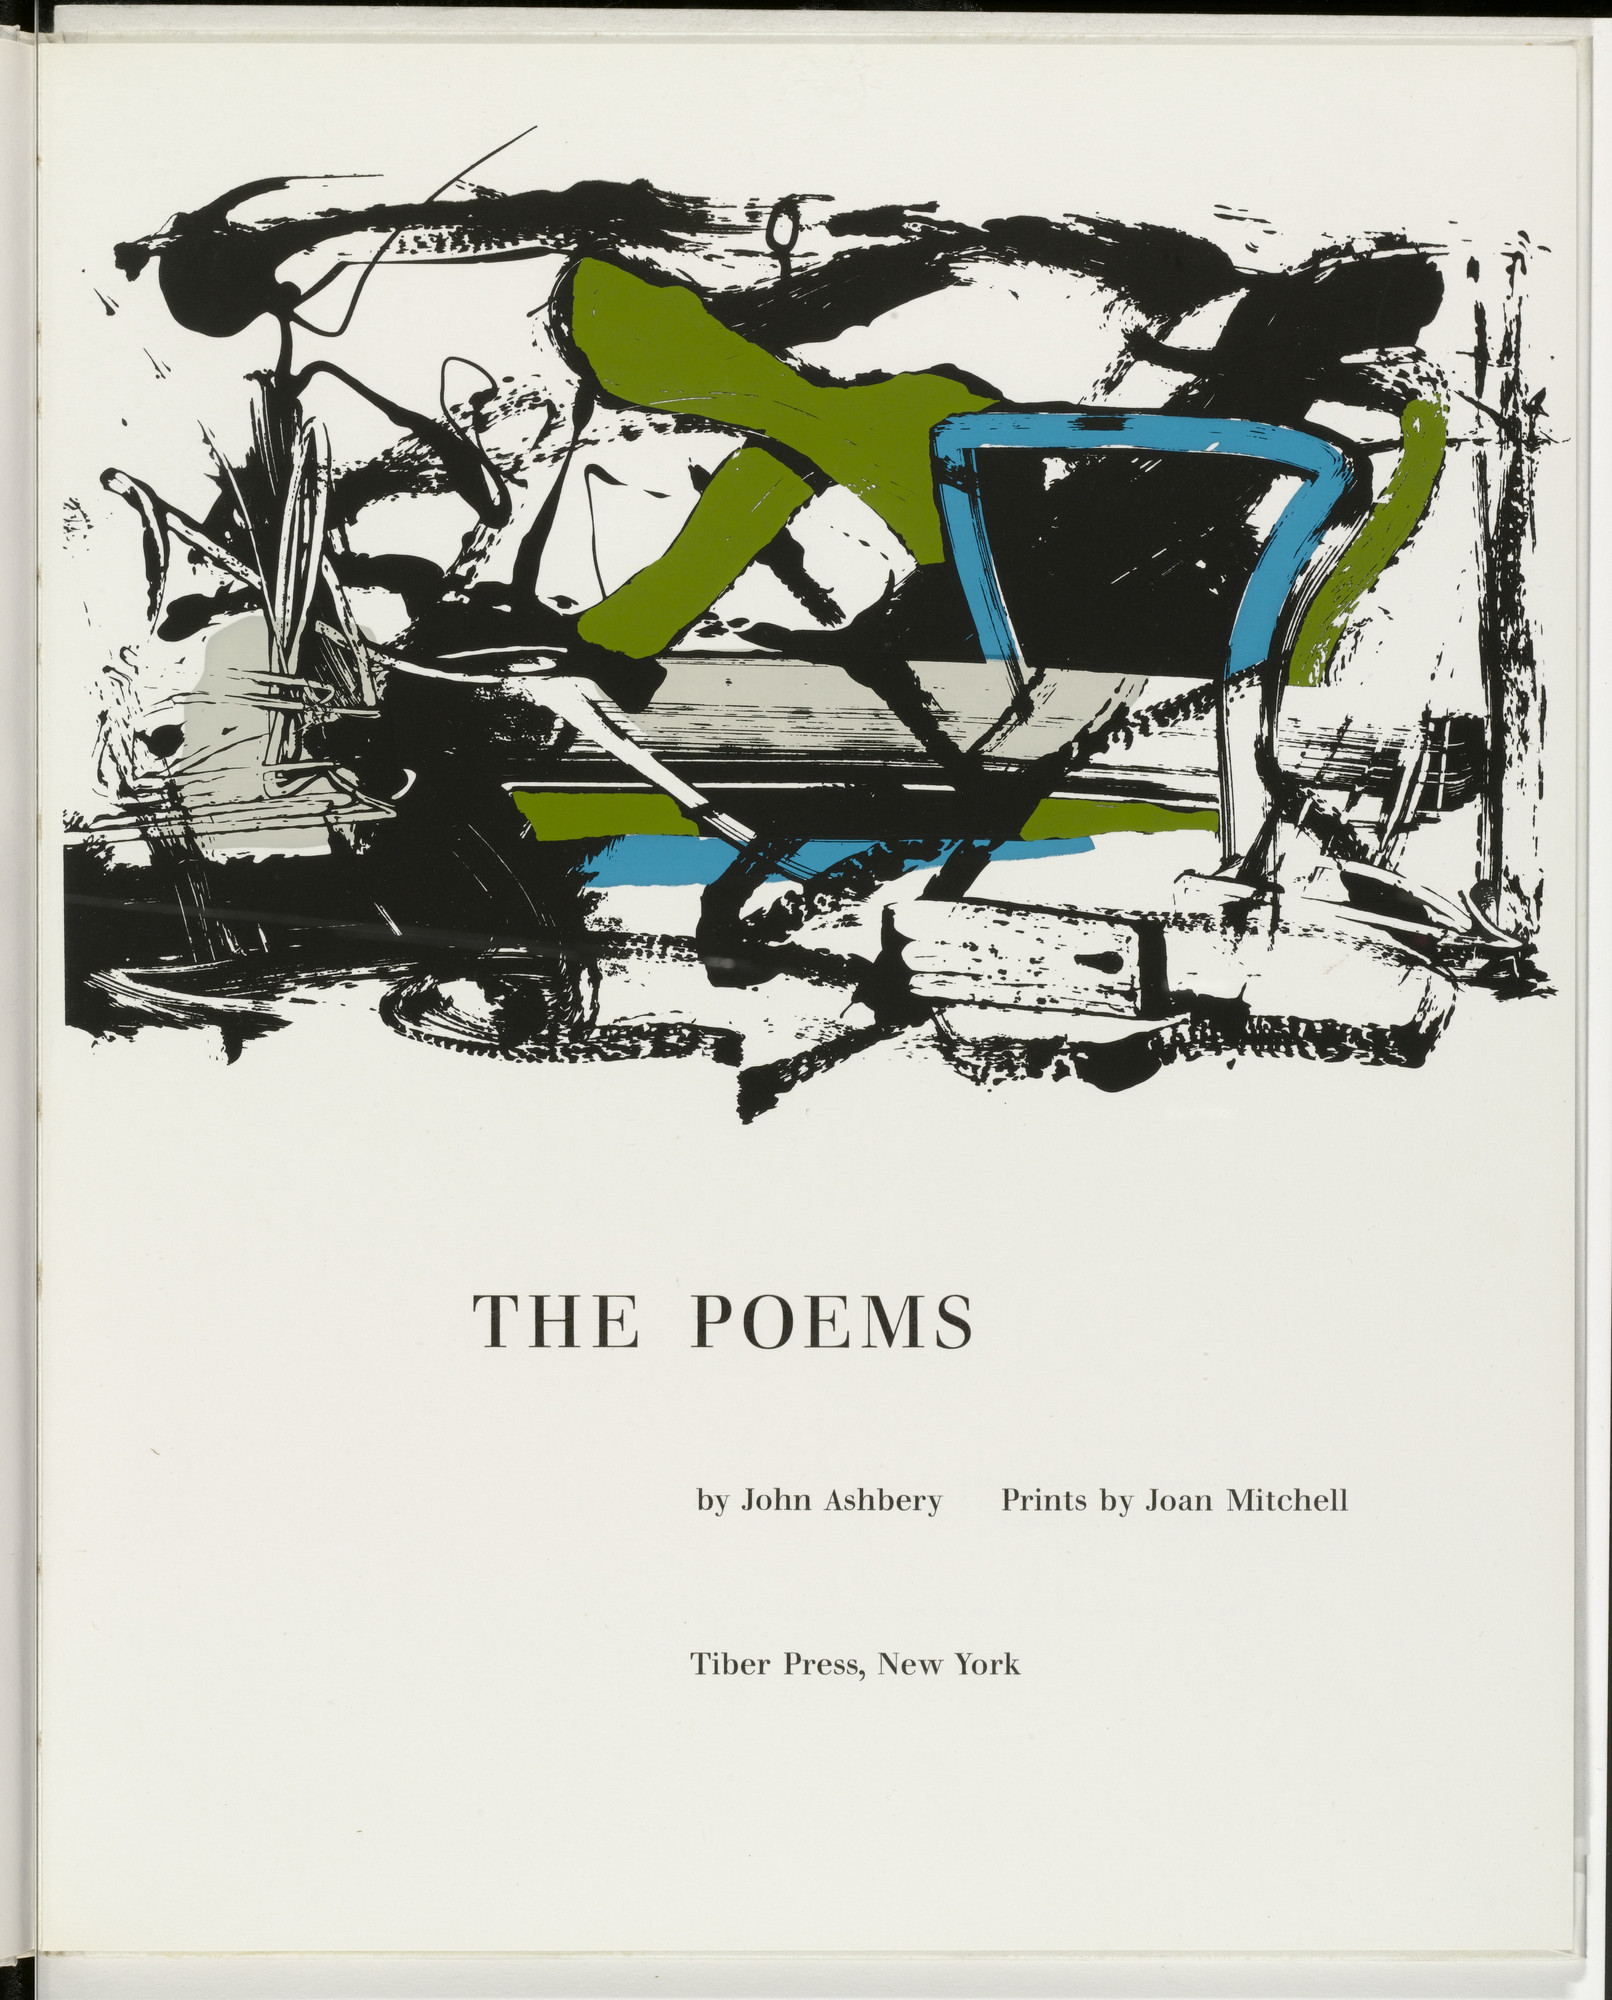 Joan Mitchell. Title page from The Poems. 1960